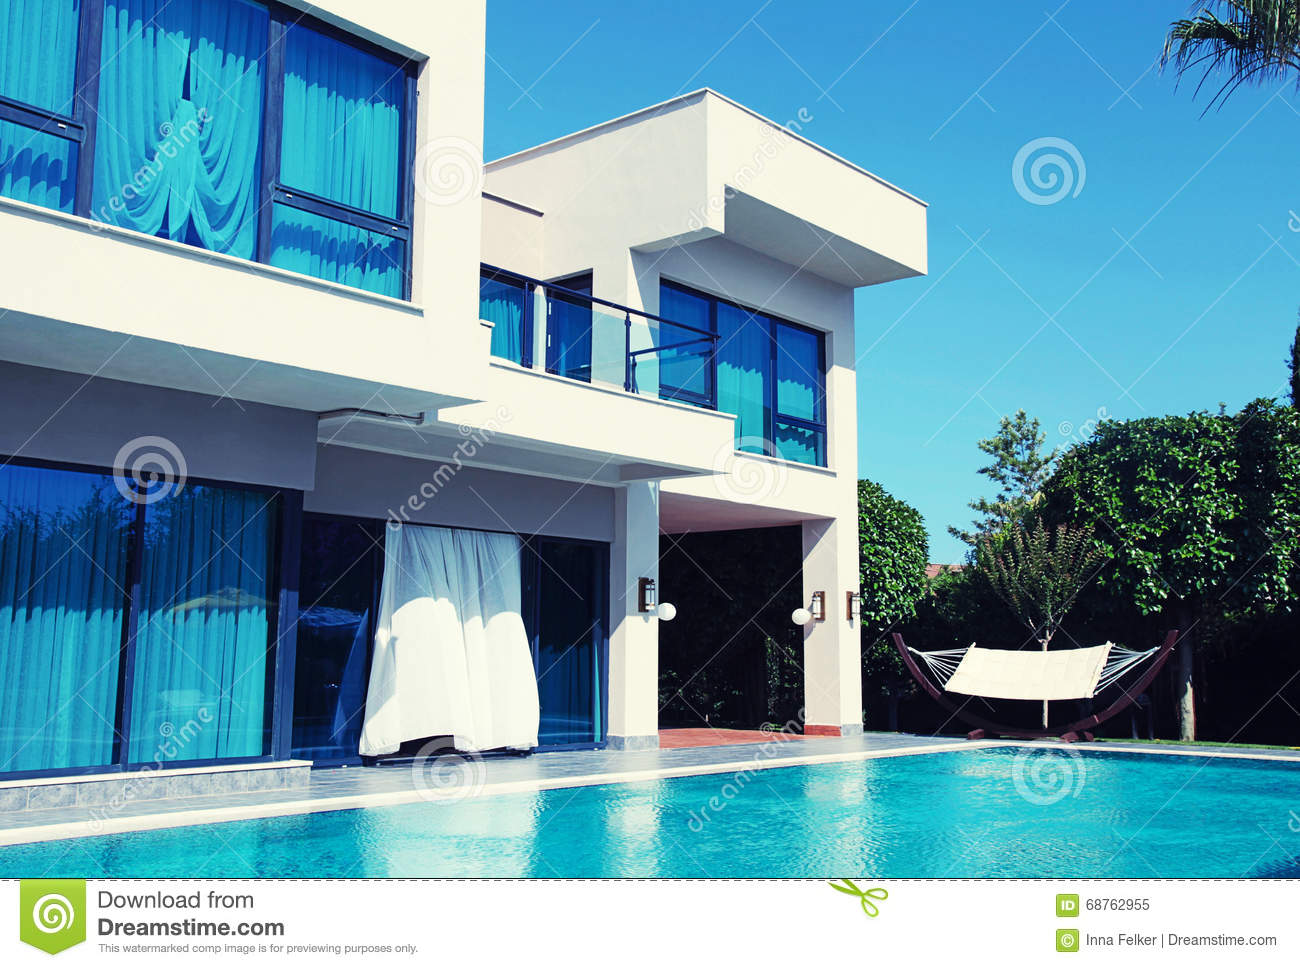 Luxury villa with swimming pool in a summer resort